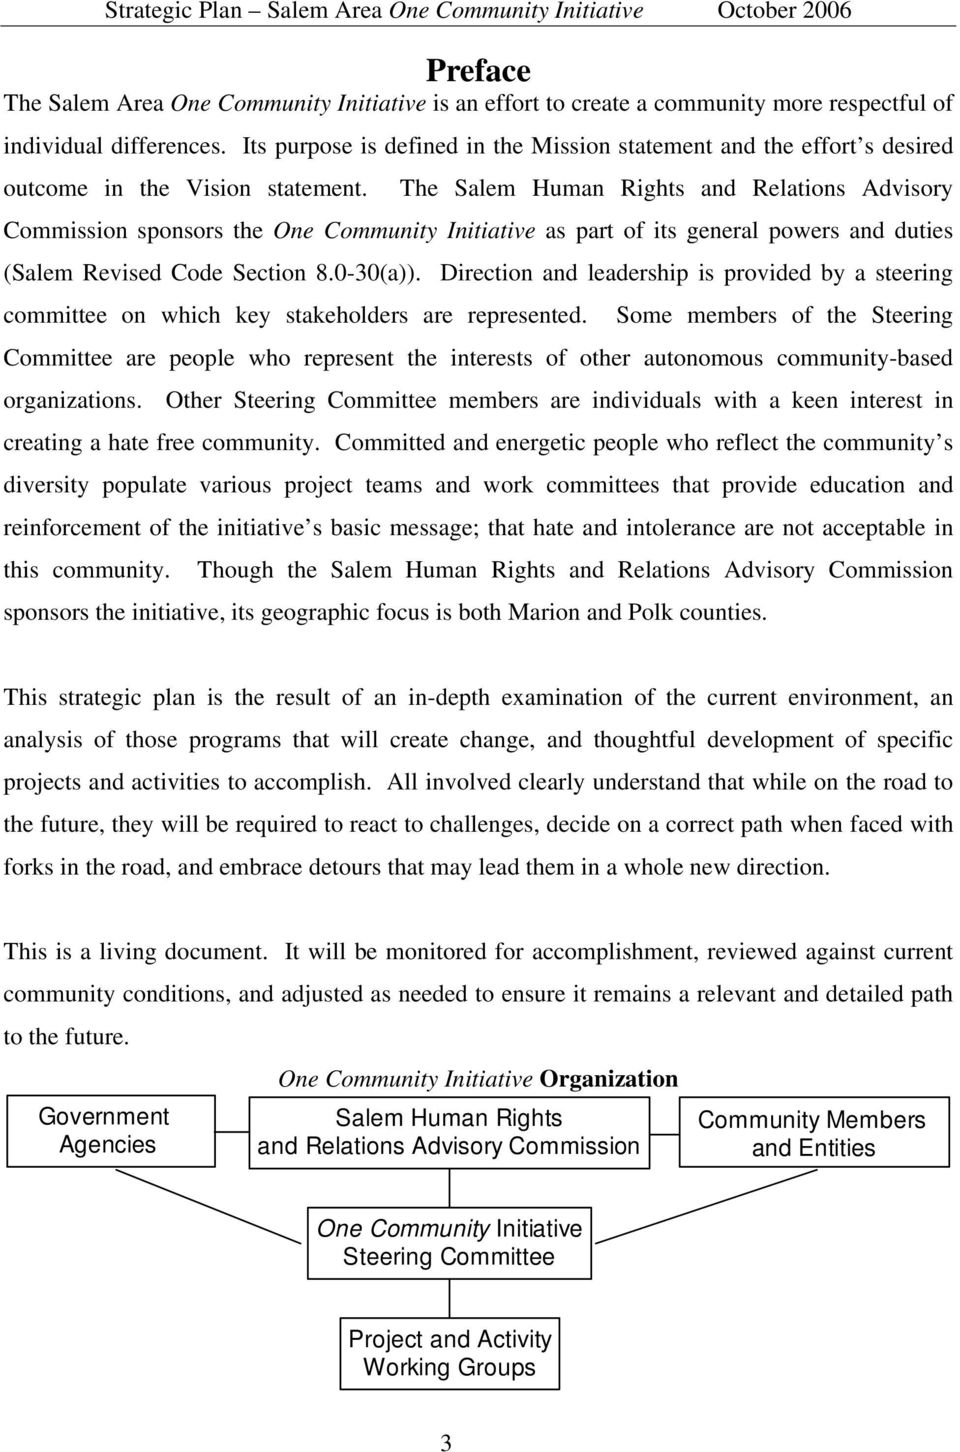 The Salem Human Rights and Relations Advisory Commission sponsors the One Community Initiative as part of its general powers and duties (Salem Revised Code Section 8.0-30(a)).